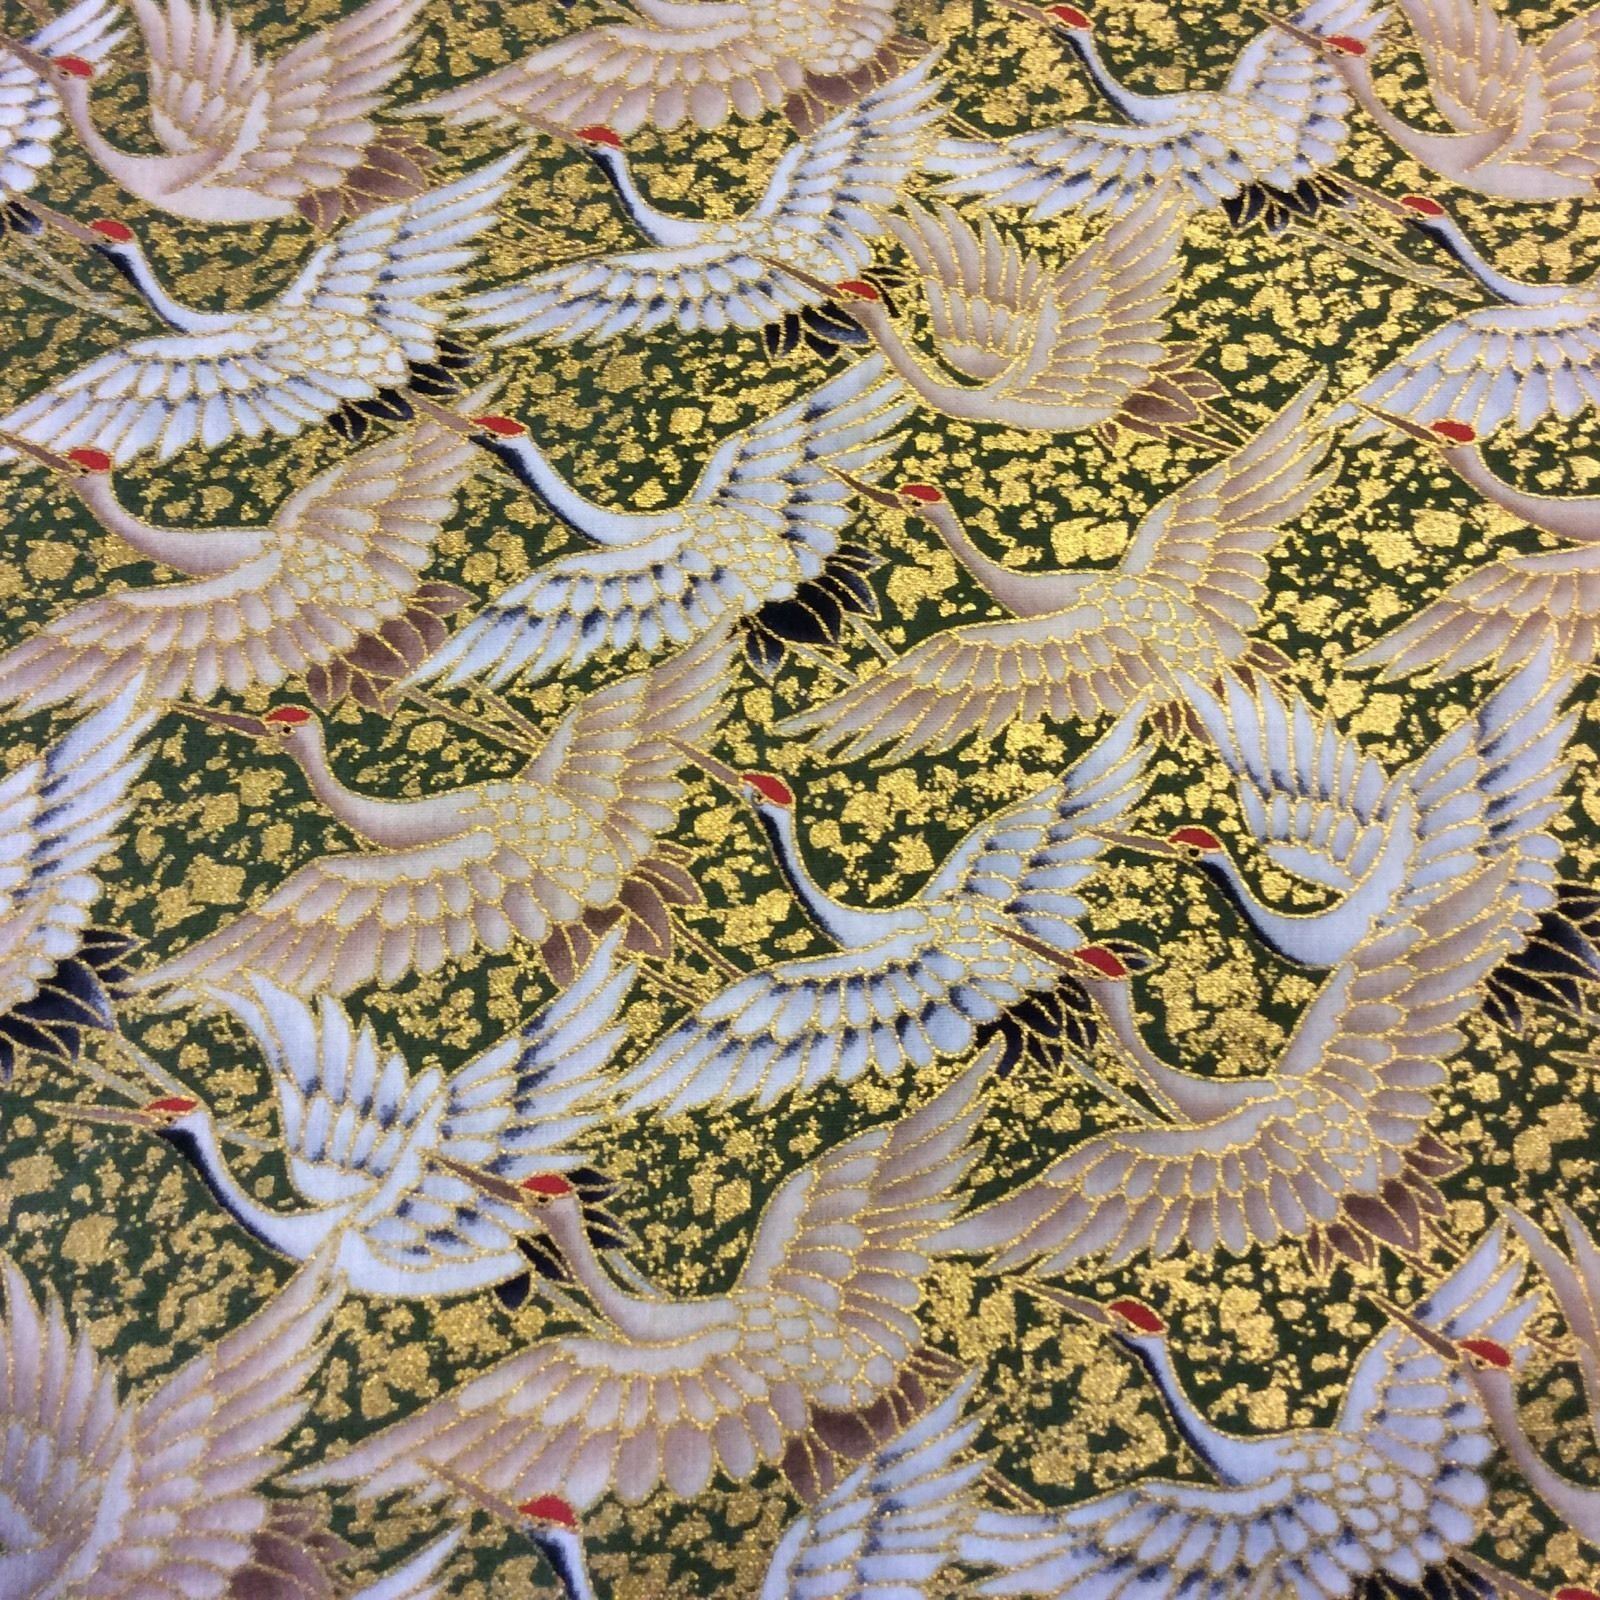 Crane Japan Bird Asia Gold Obi Metallic Kimono Yukata Cotton Quilt Fabric KB14